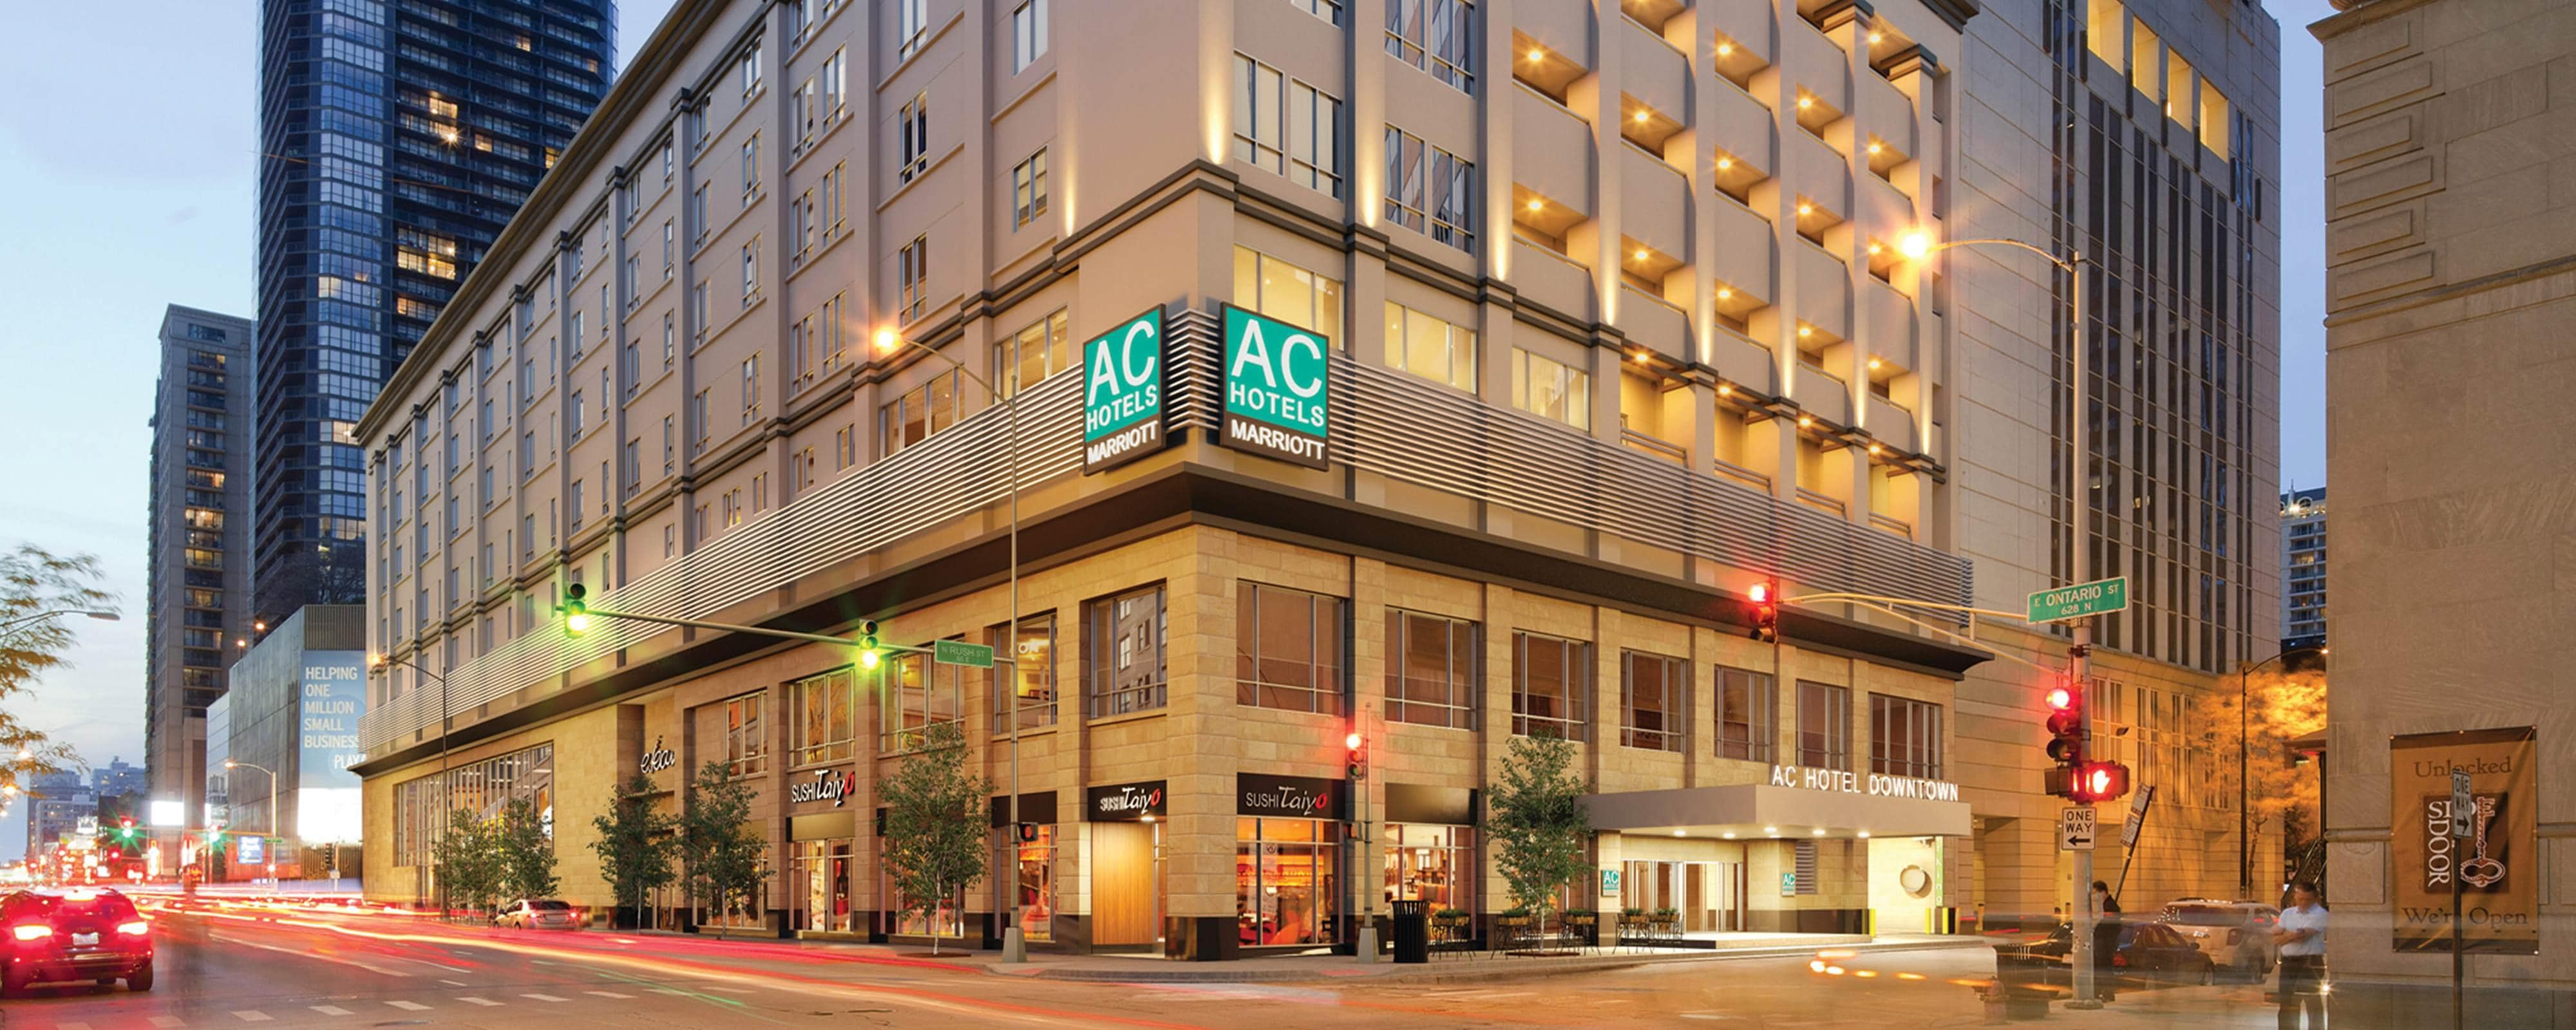 Magnificent Mile Boutique Hotels Downtown Chicago Ac Hotel Chicago